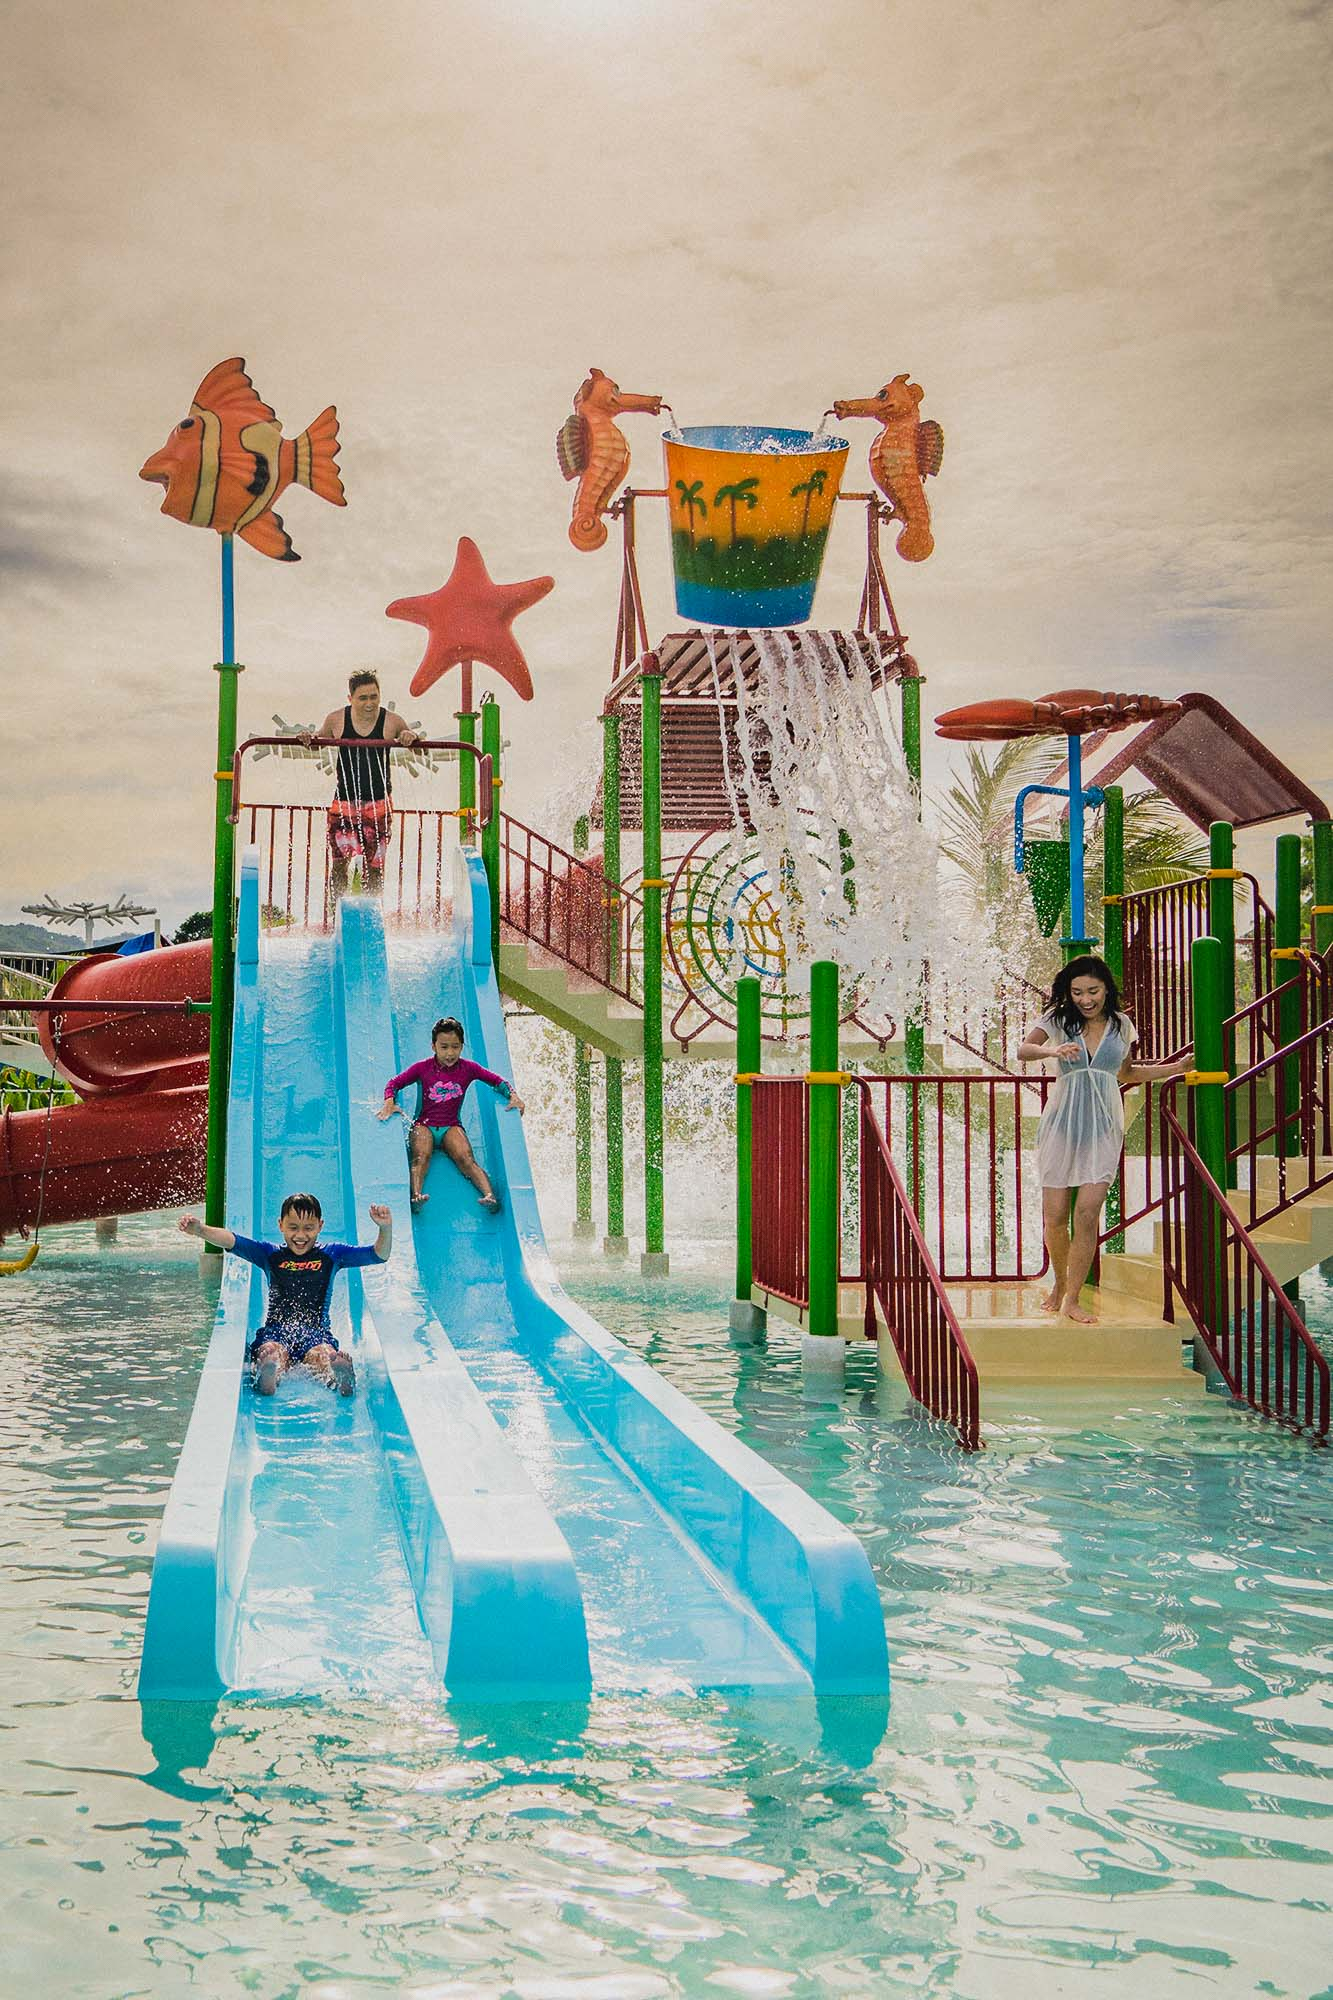 palawan-waterpark_tumbling-buckets-kidzone2